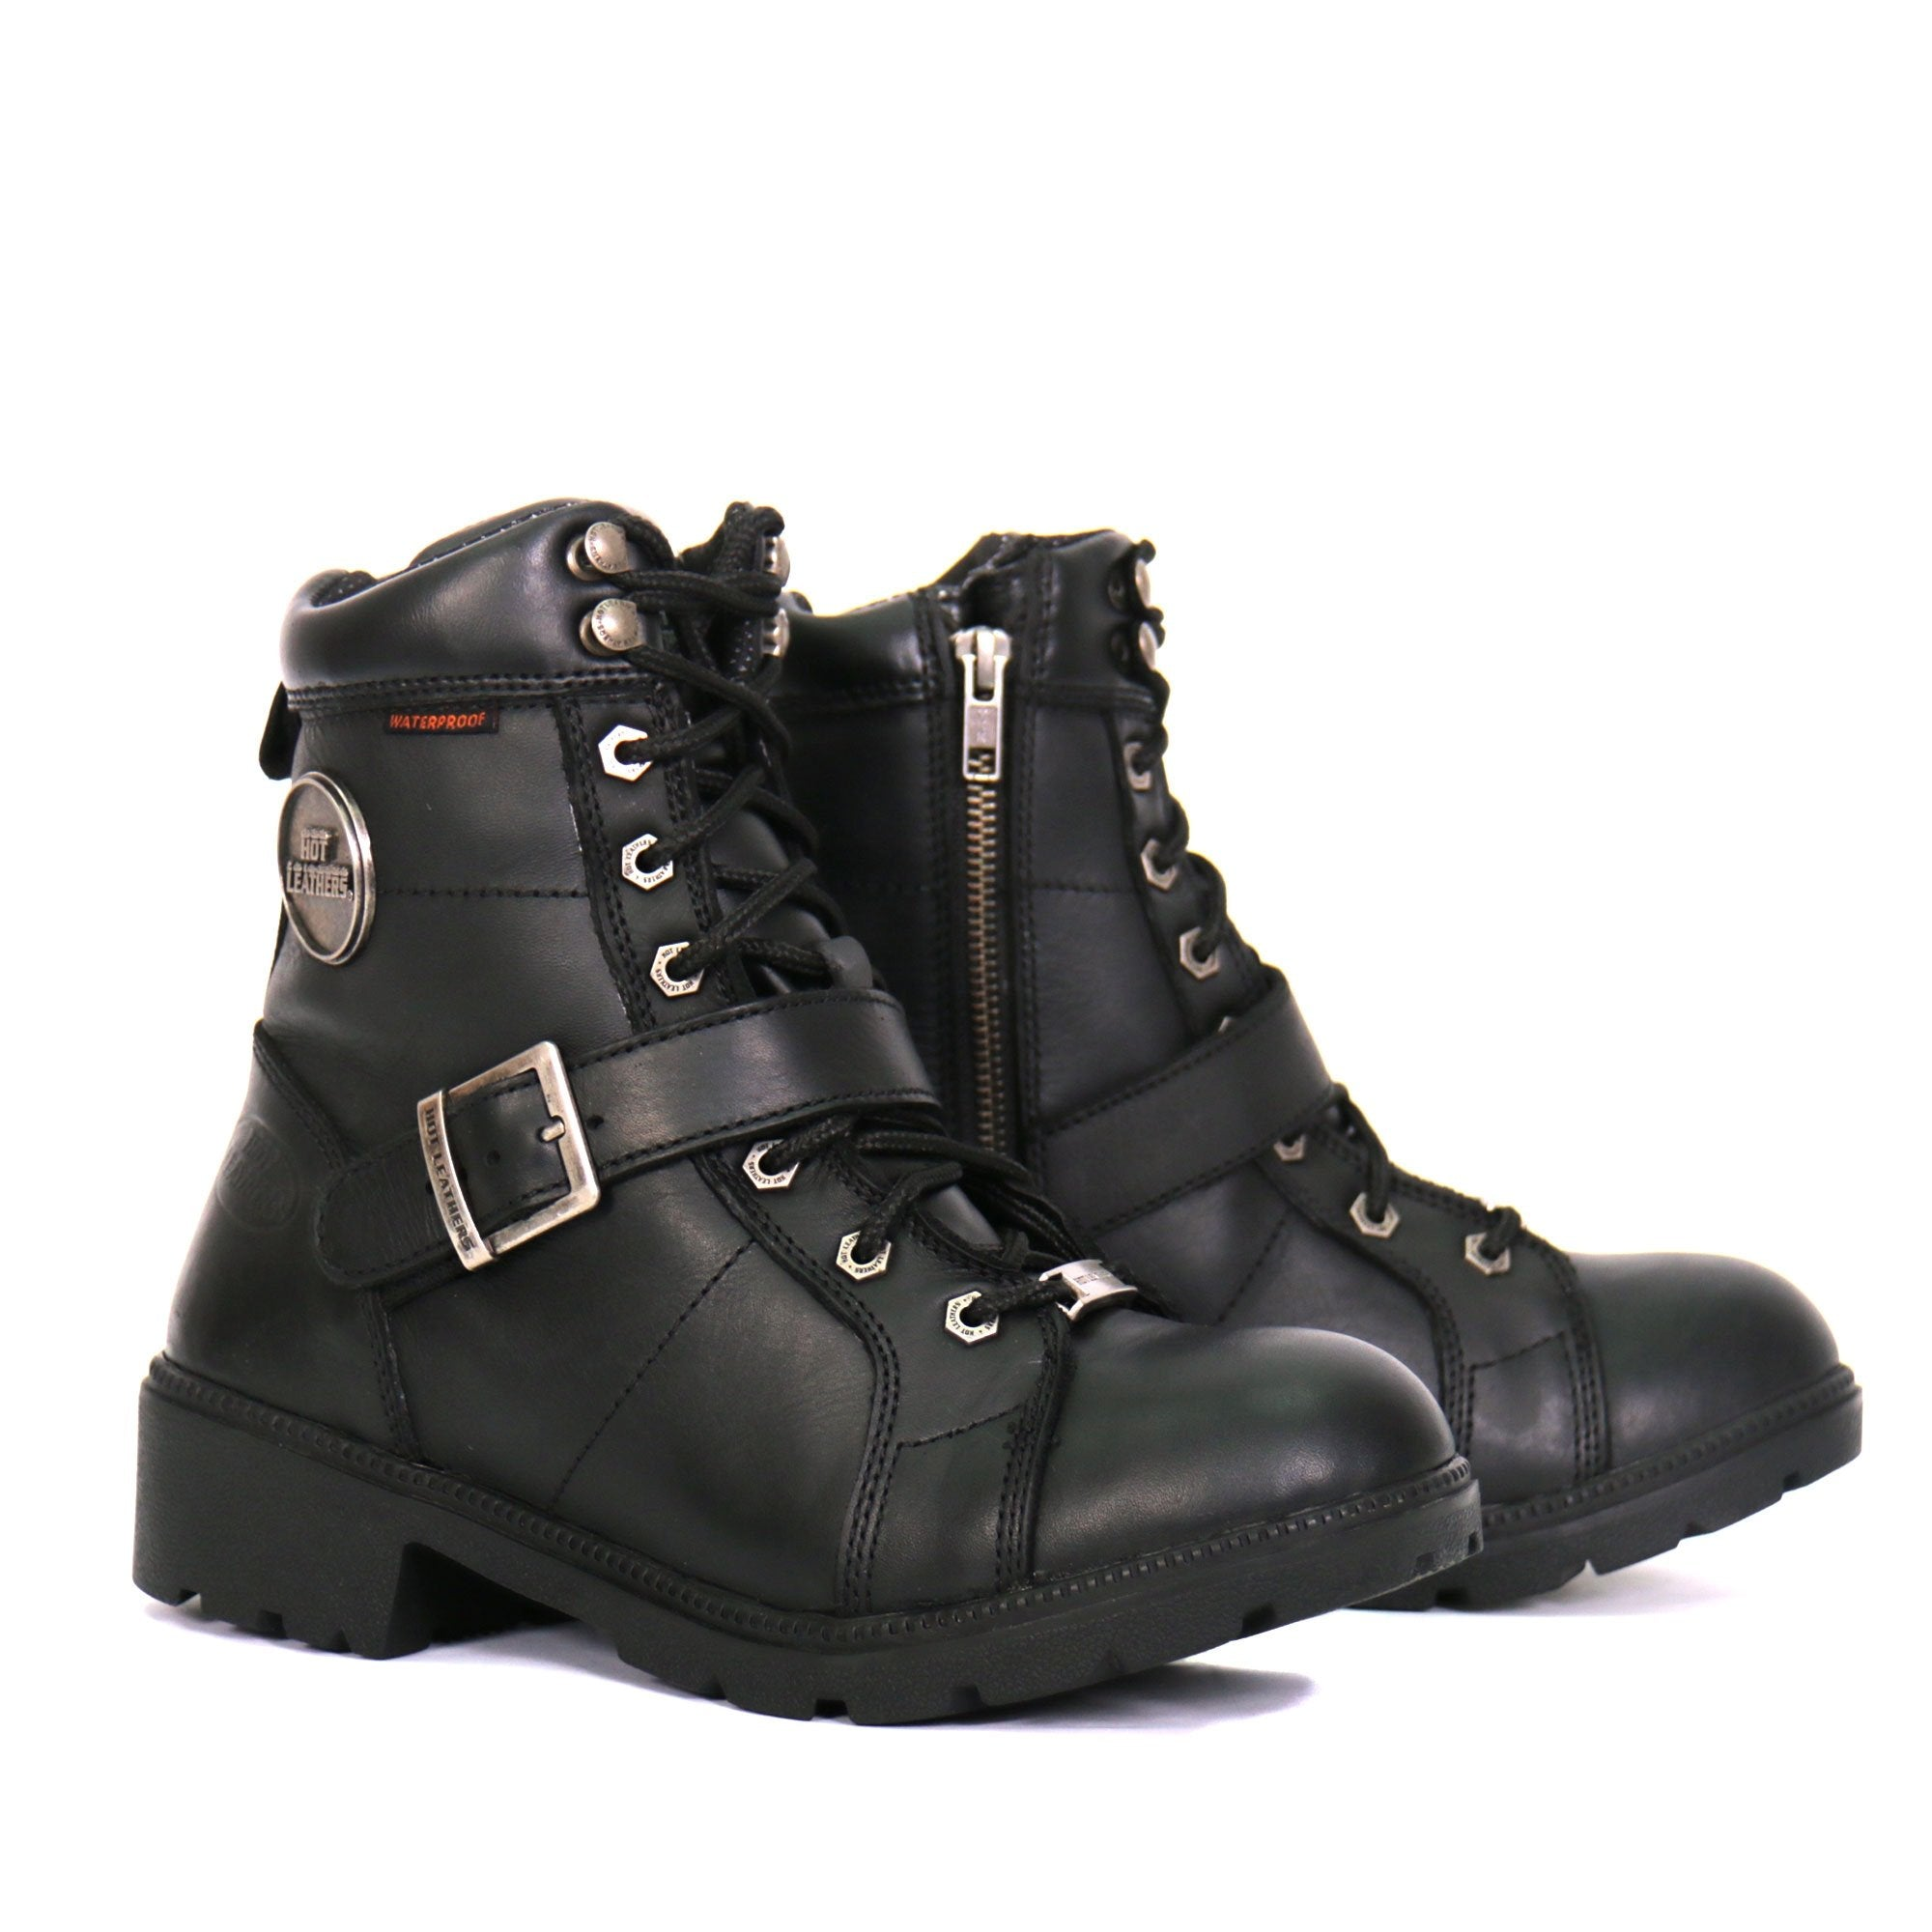 Hot Leathers BTL1004 Ladies 6-inch Black Lace-Up Leather Boots with